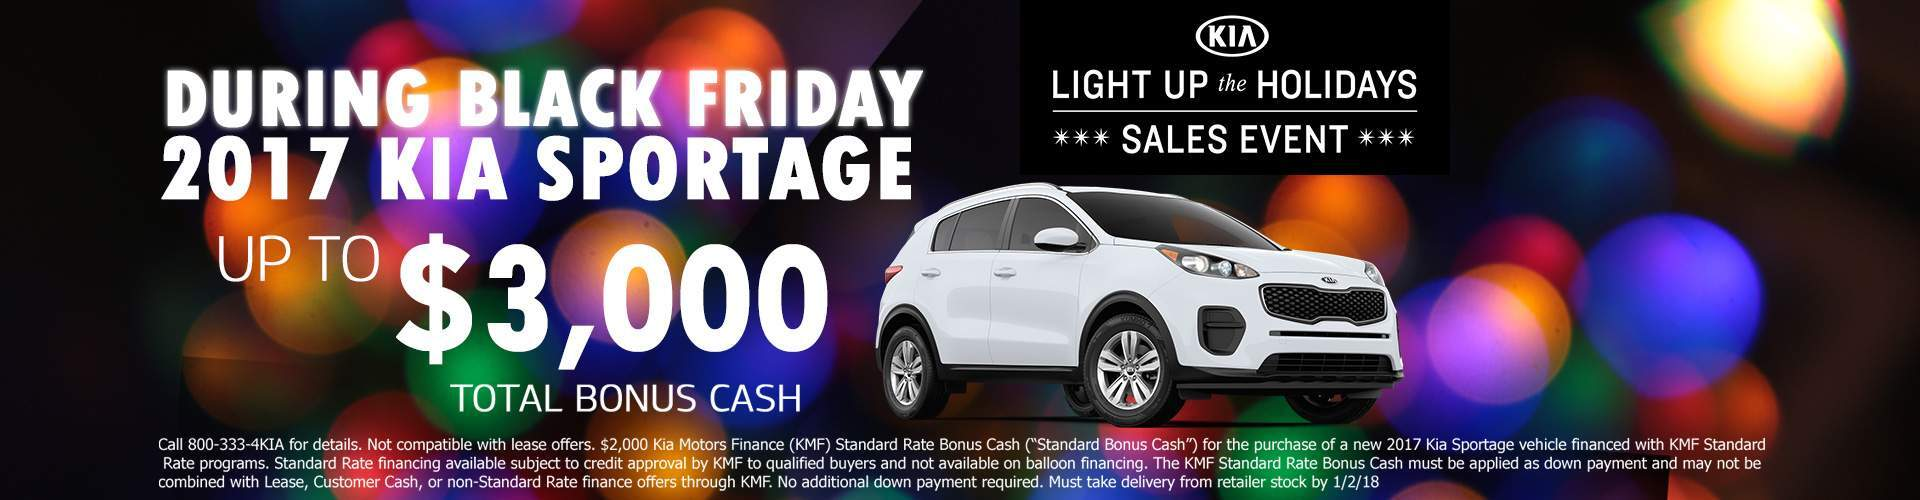 Black Friday 2017 KIA Sportage